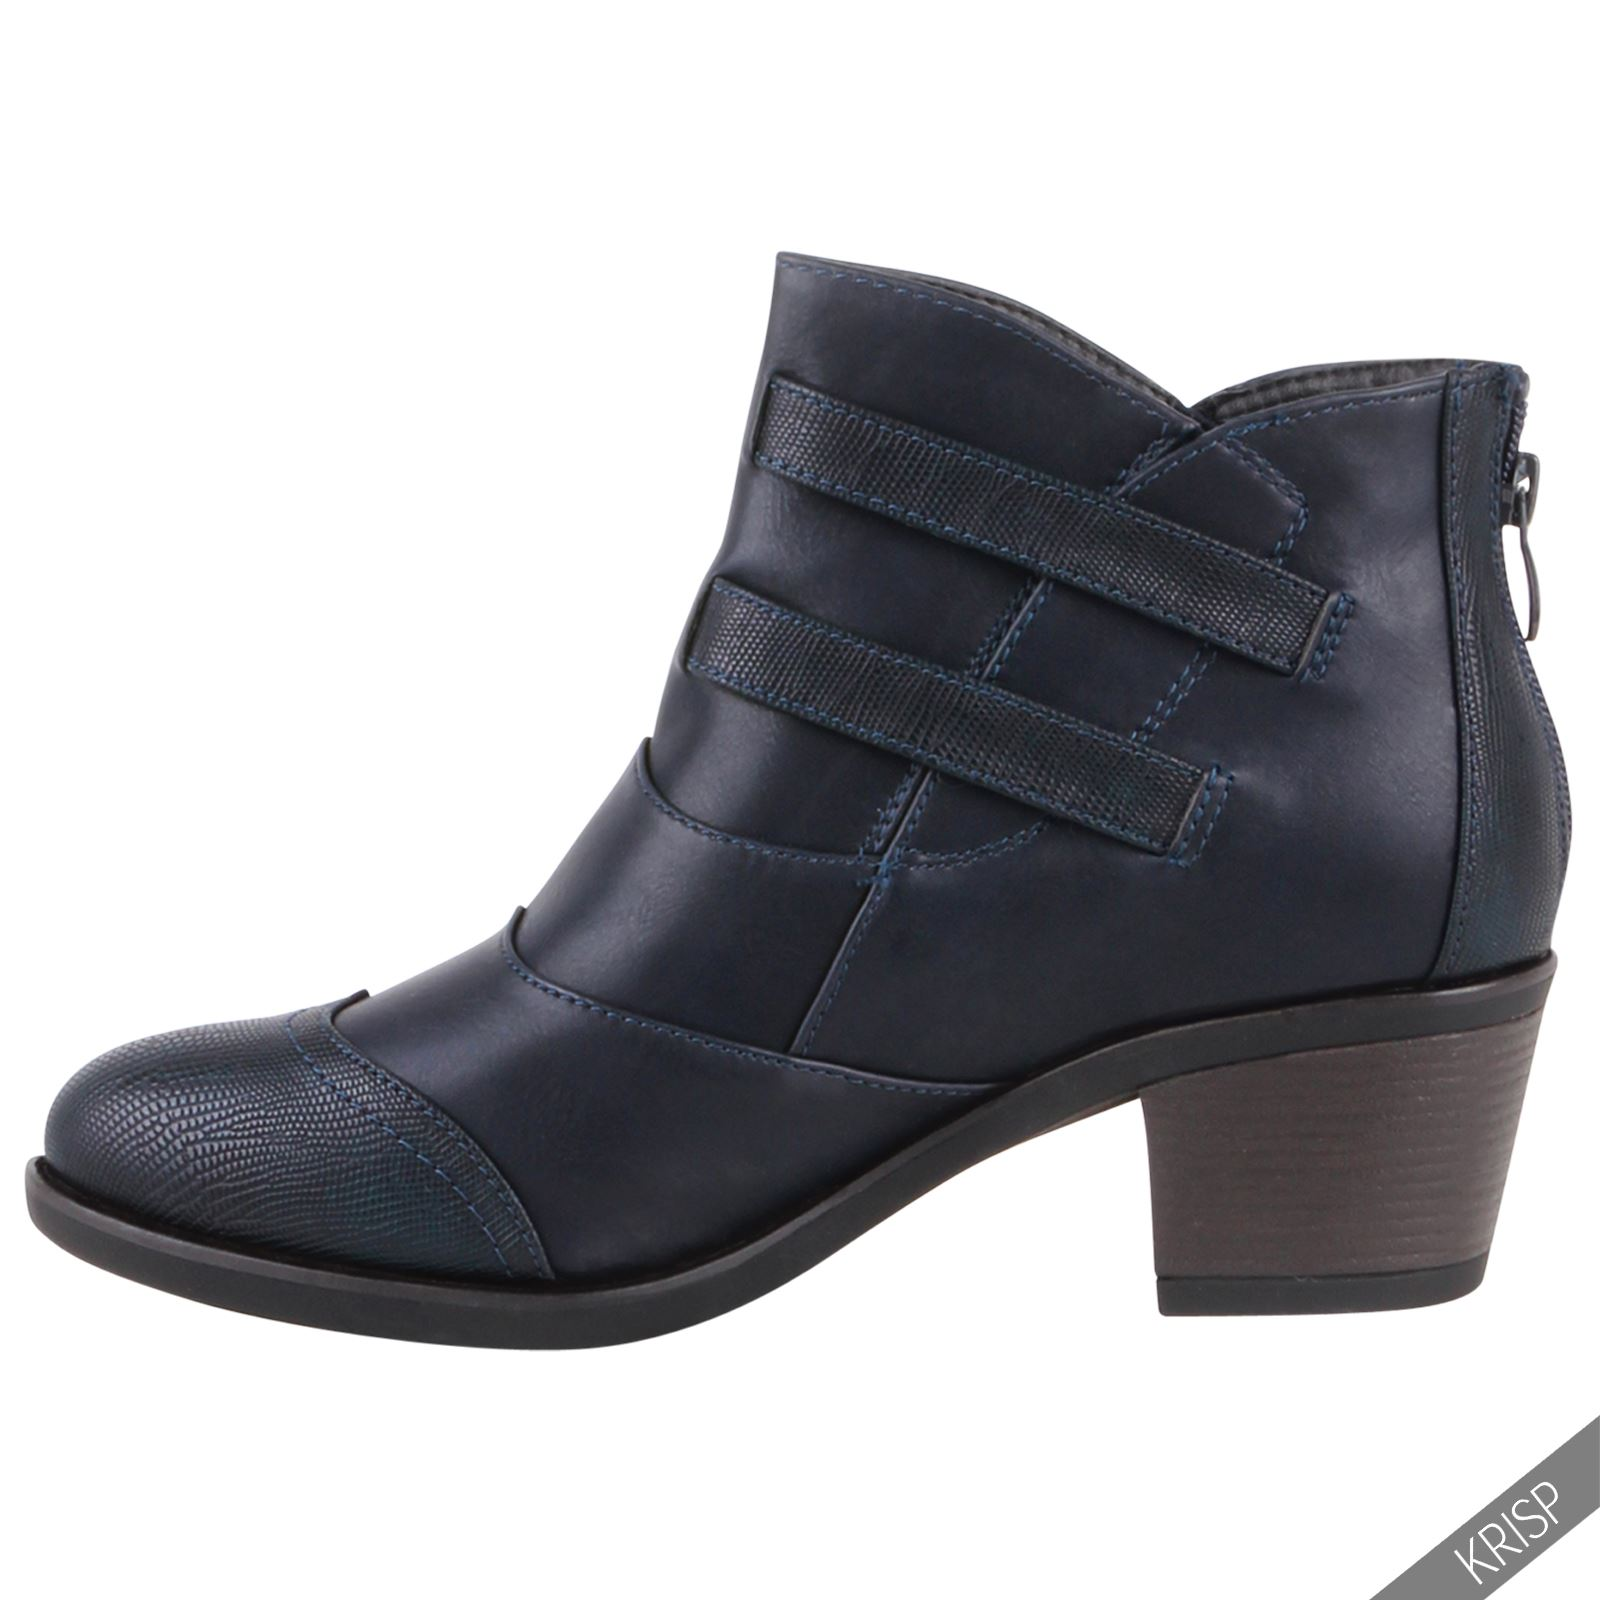 Cool Combining The Sturdy Sophistication Of A Brogue And The Classic Shape Of A Boot, These Oscar Boots Make An Original Hybrid Of Two Classic Styles A Brand Favourite, This Style Can Be Dressed To Adhere To A Girly Or Tomboy Style As Suits